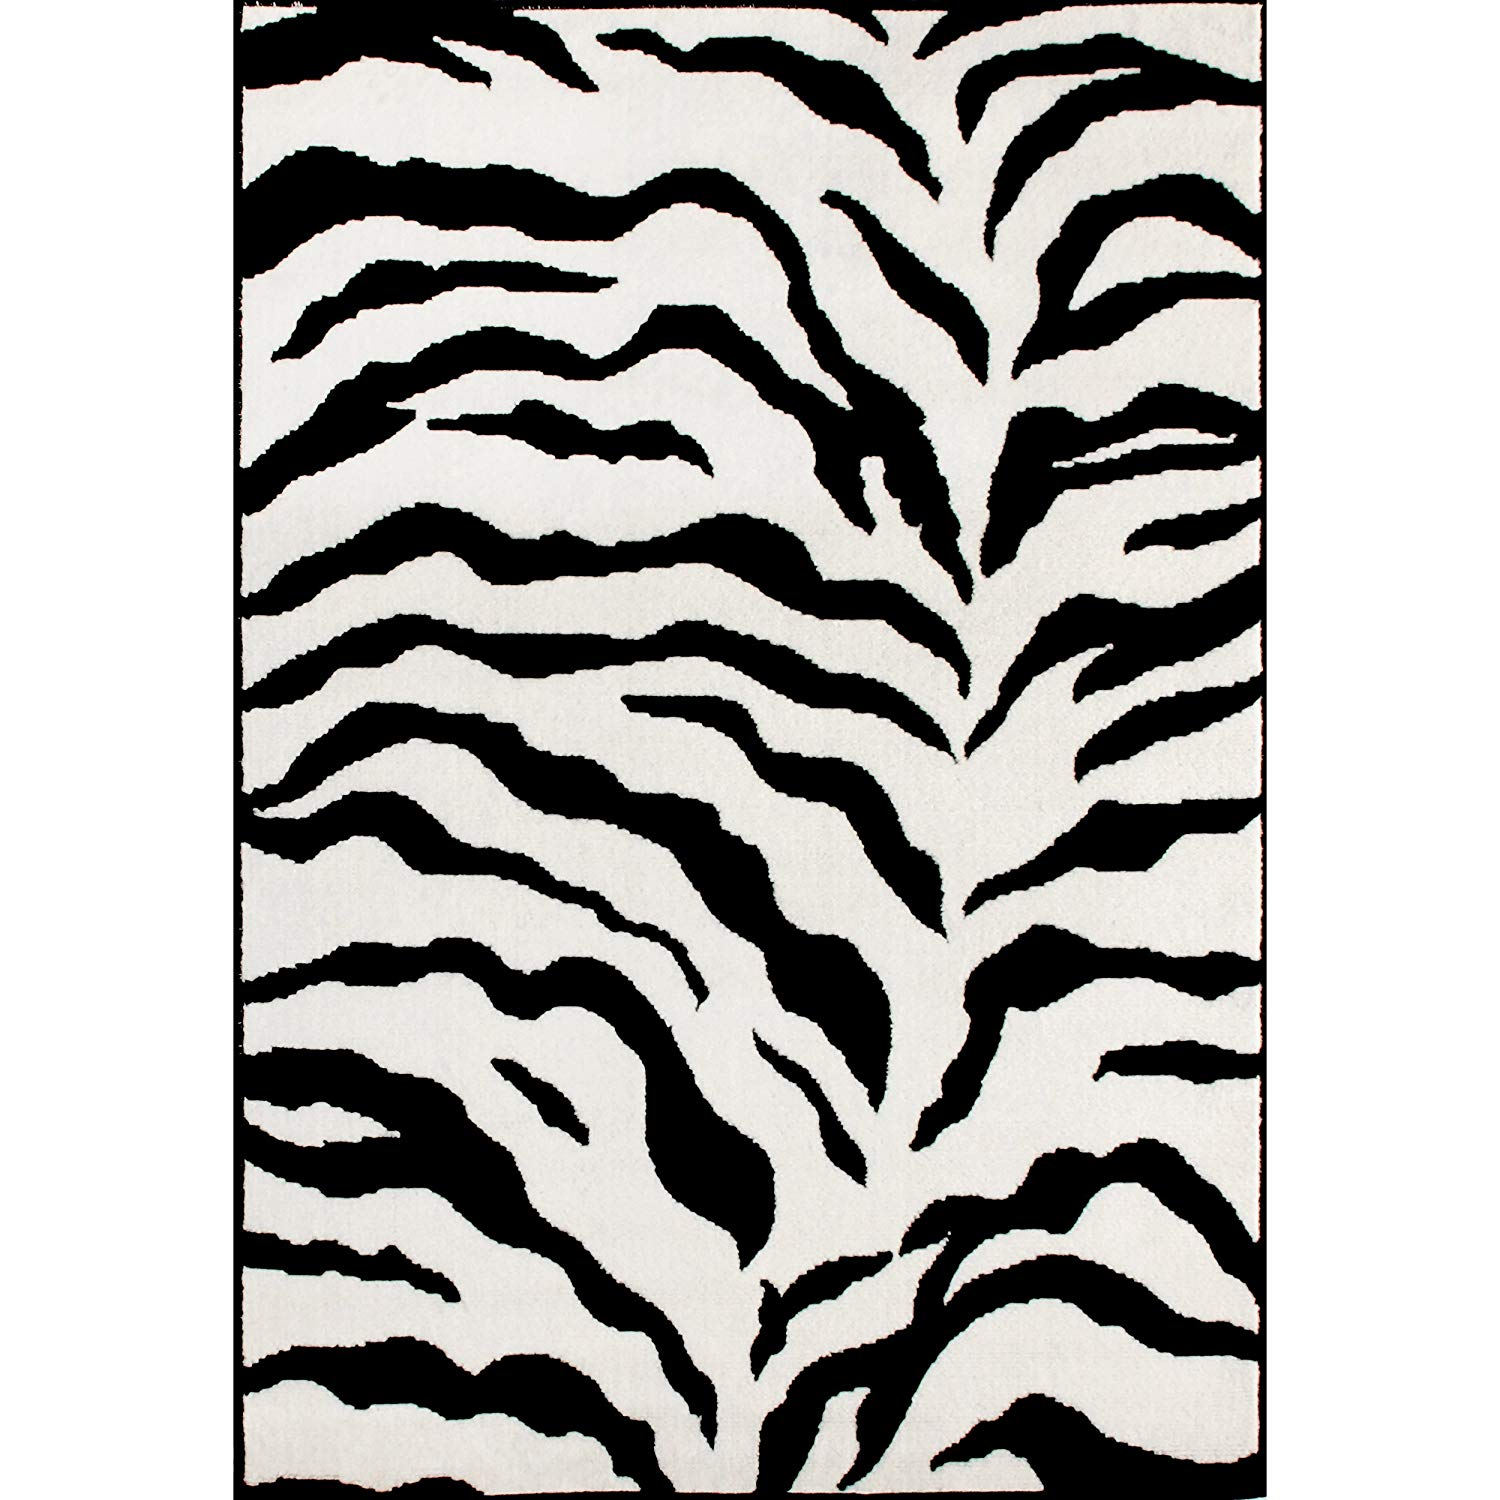 zebra rugs amazon.com: zebra animal skin print modern carpet black area rug, 3 feet 11 IZLJLIA